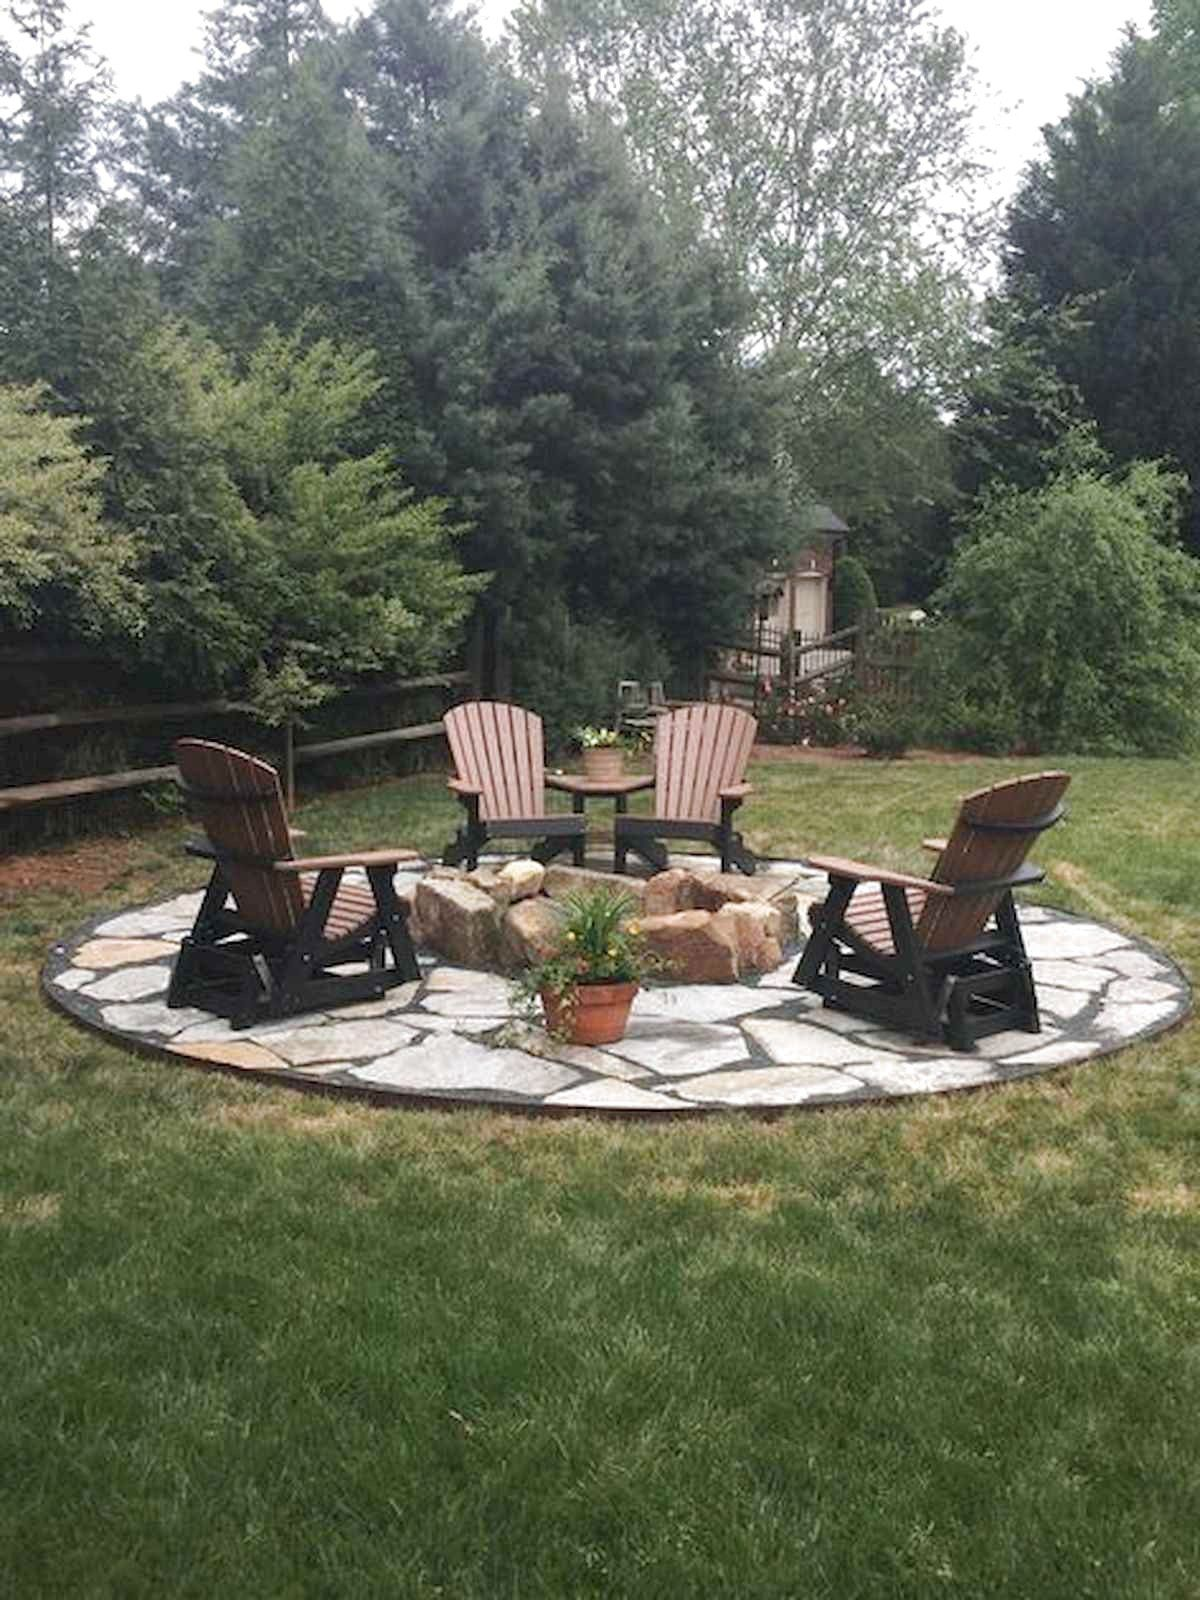 Photo of 47 Amazing Outdoor Fire Pit Design Ideas #OutdoorFirePit